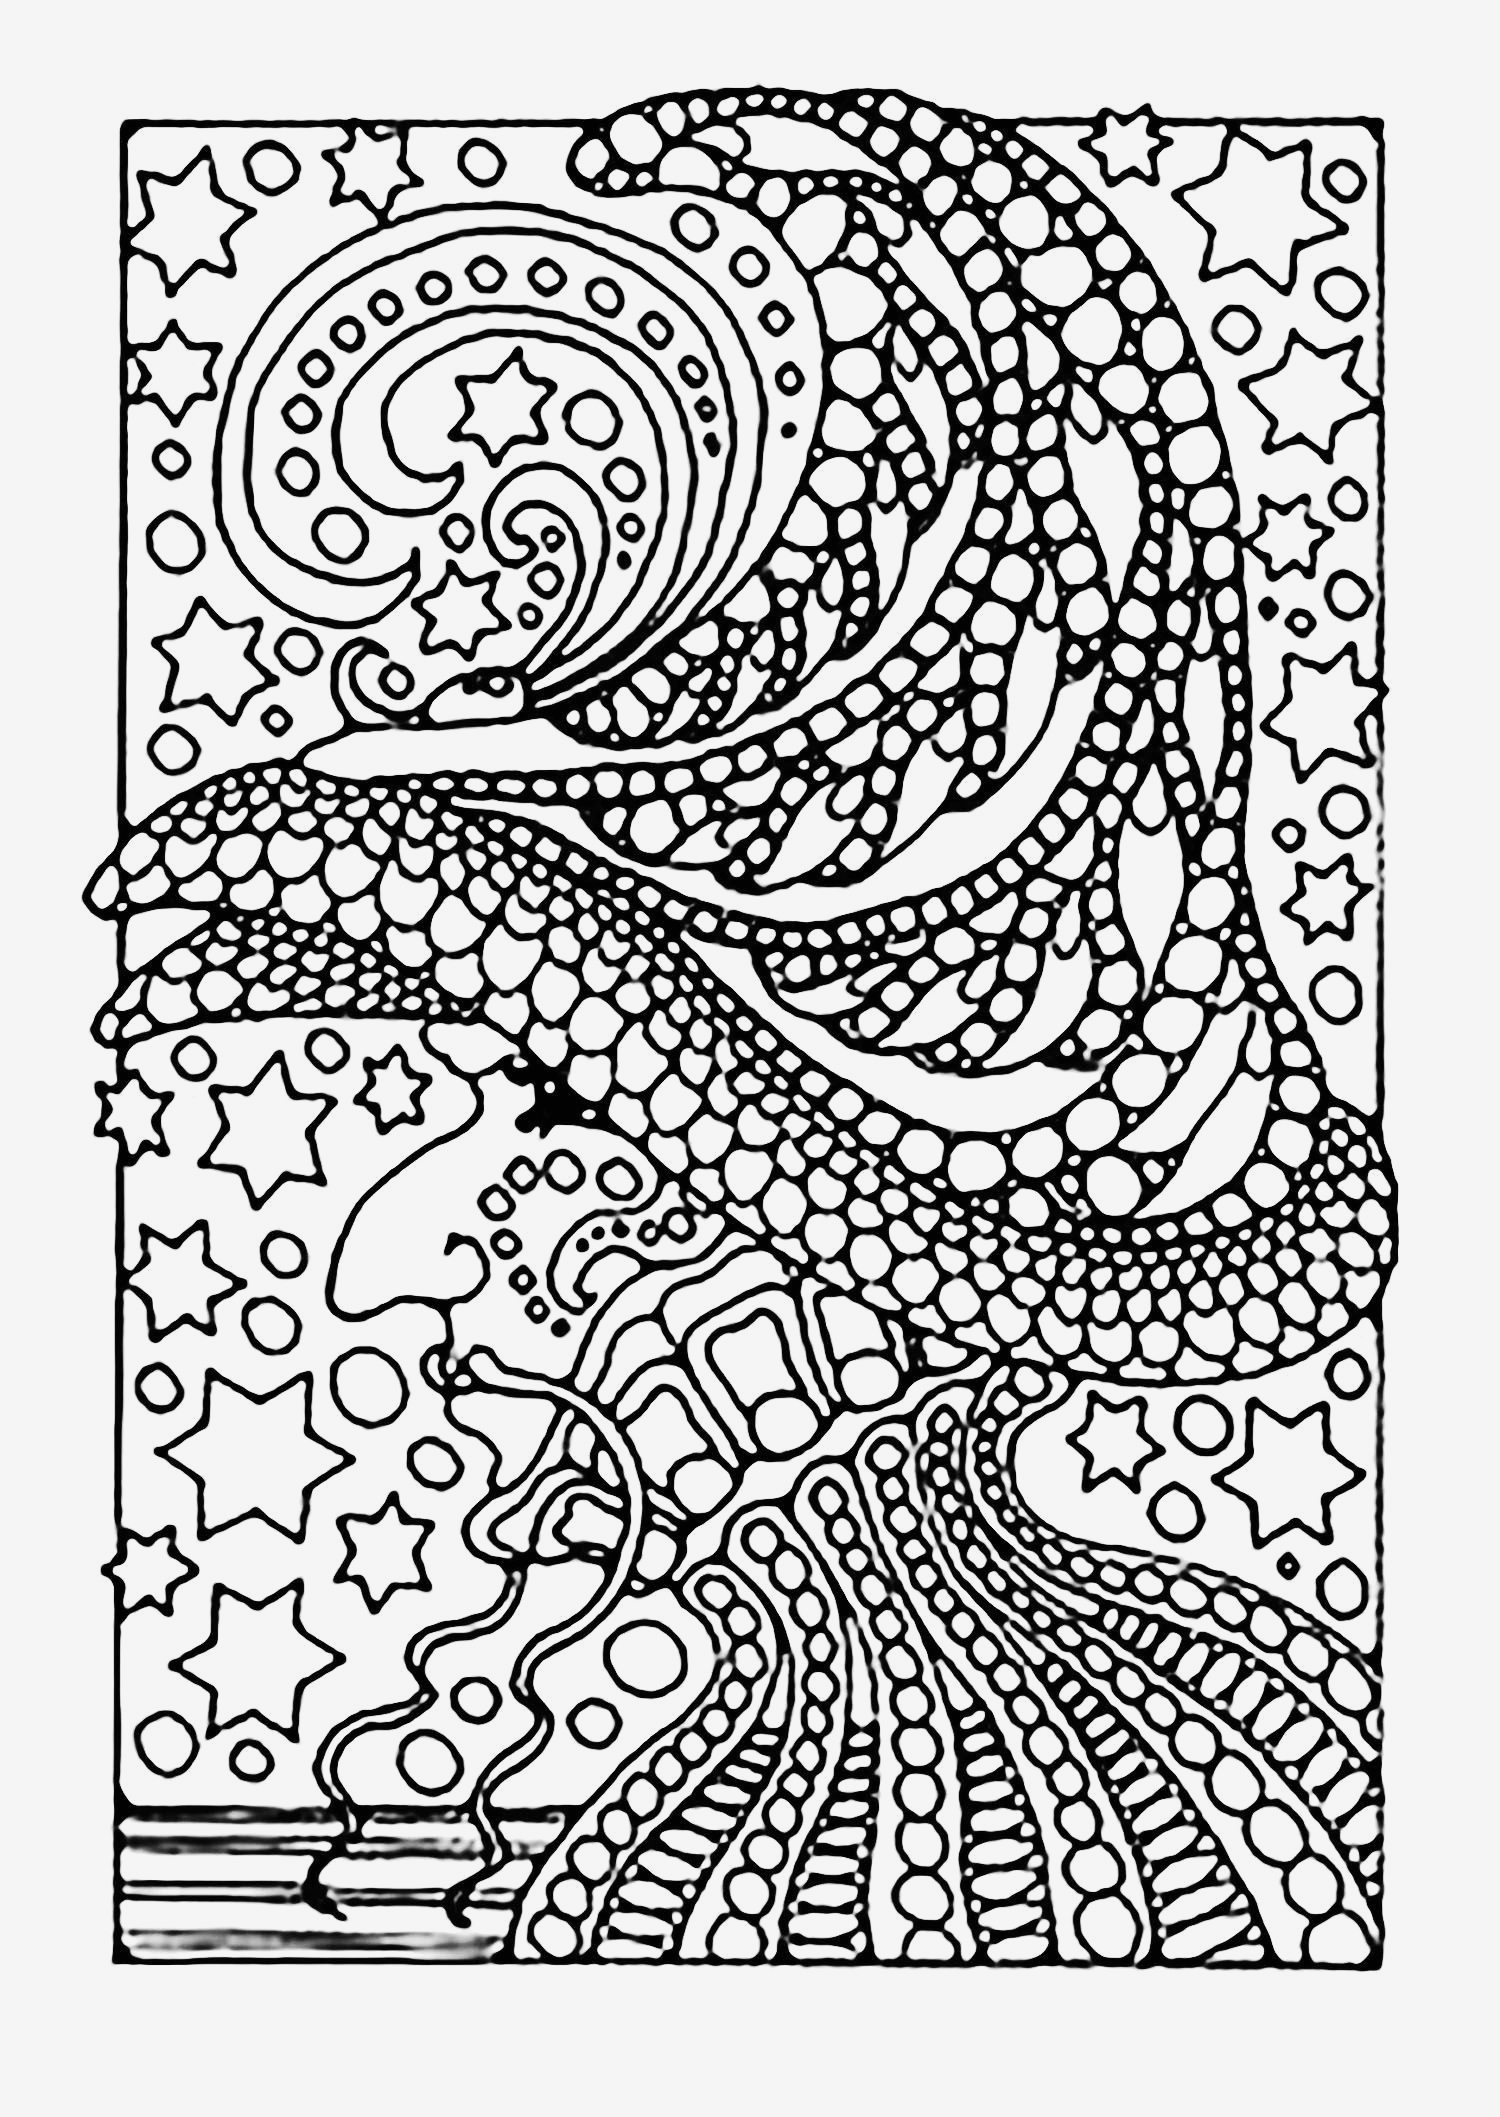 Biology Coloring Pages  Gallery 20q - Free For kids